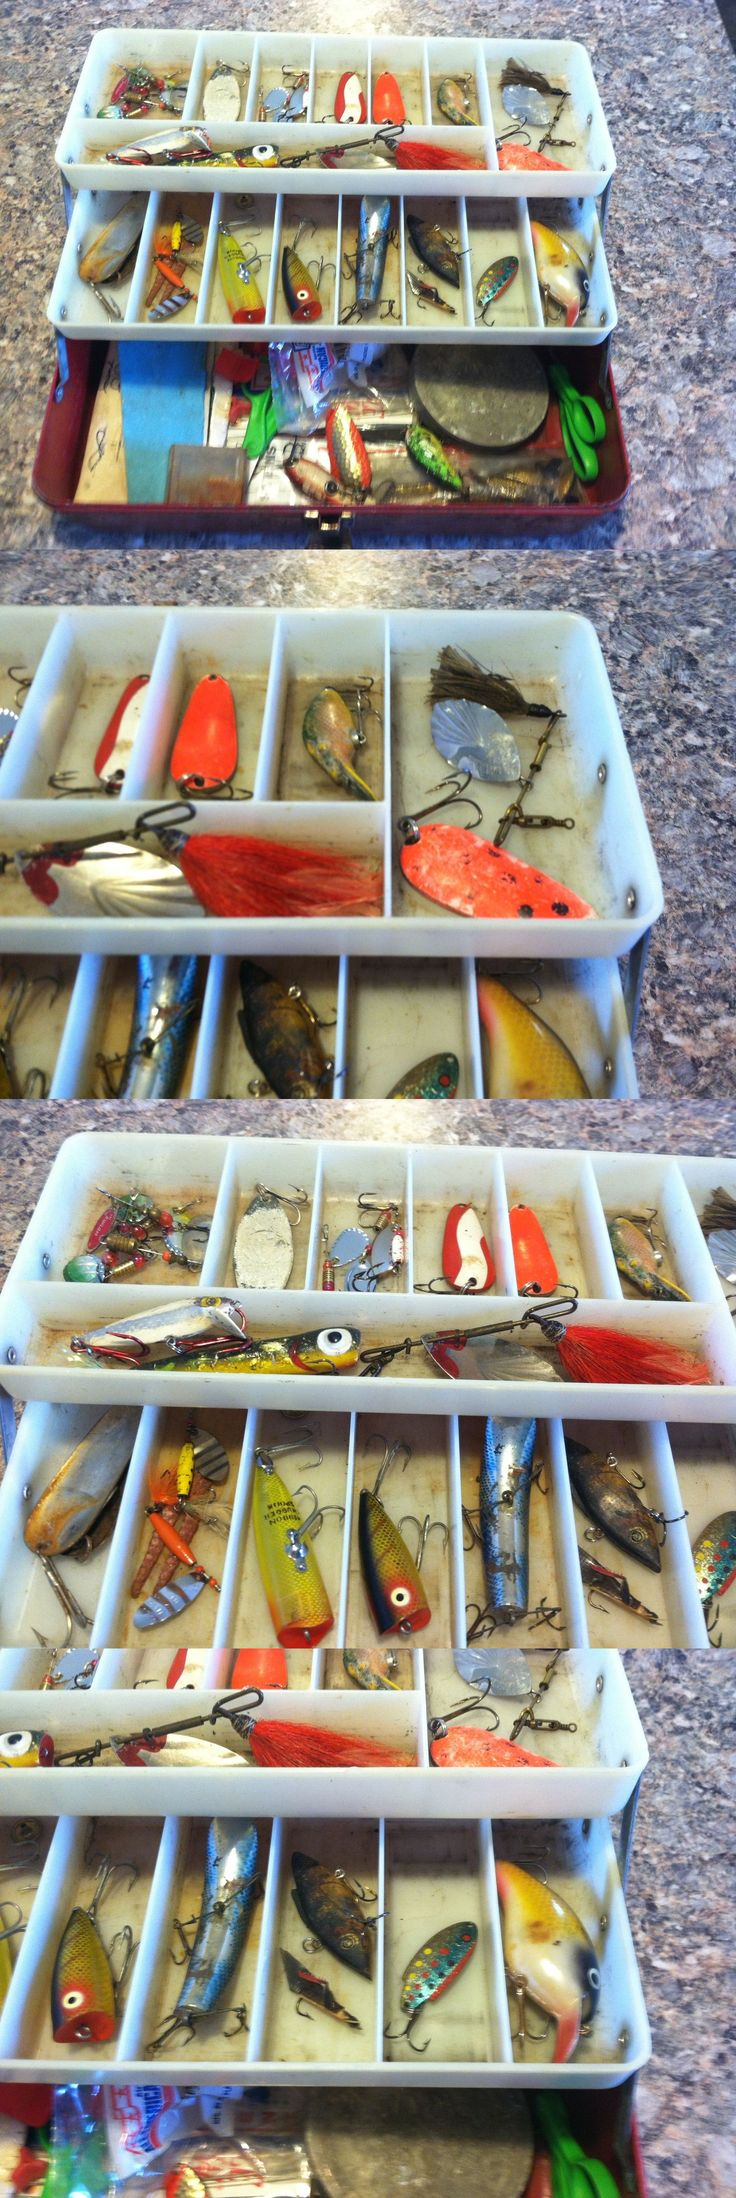 Lures 36169: Old Vintage Victor Fishing Tackle Box Full Of Lures Gear Stuff -> BUY IT NOW ONLY: $59.99 on eBay!